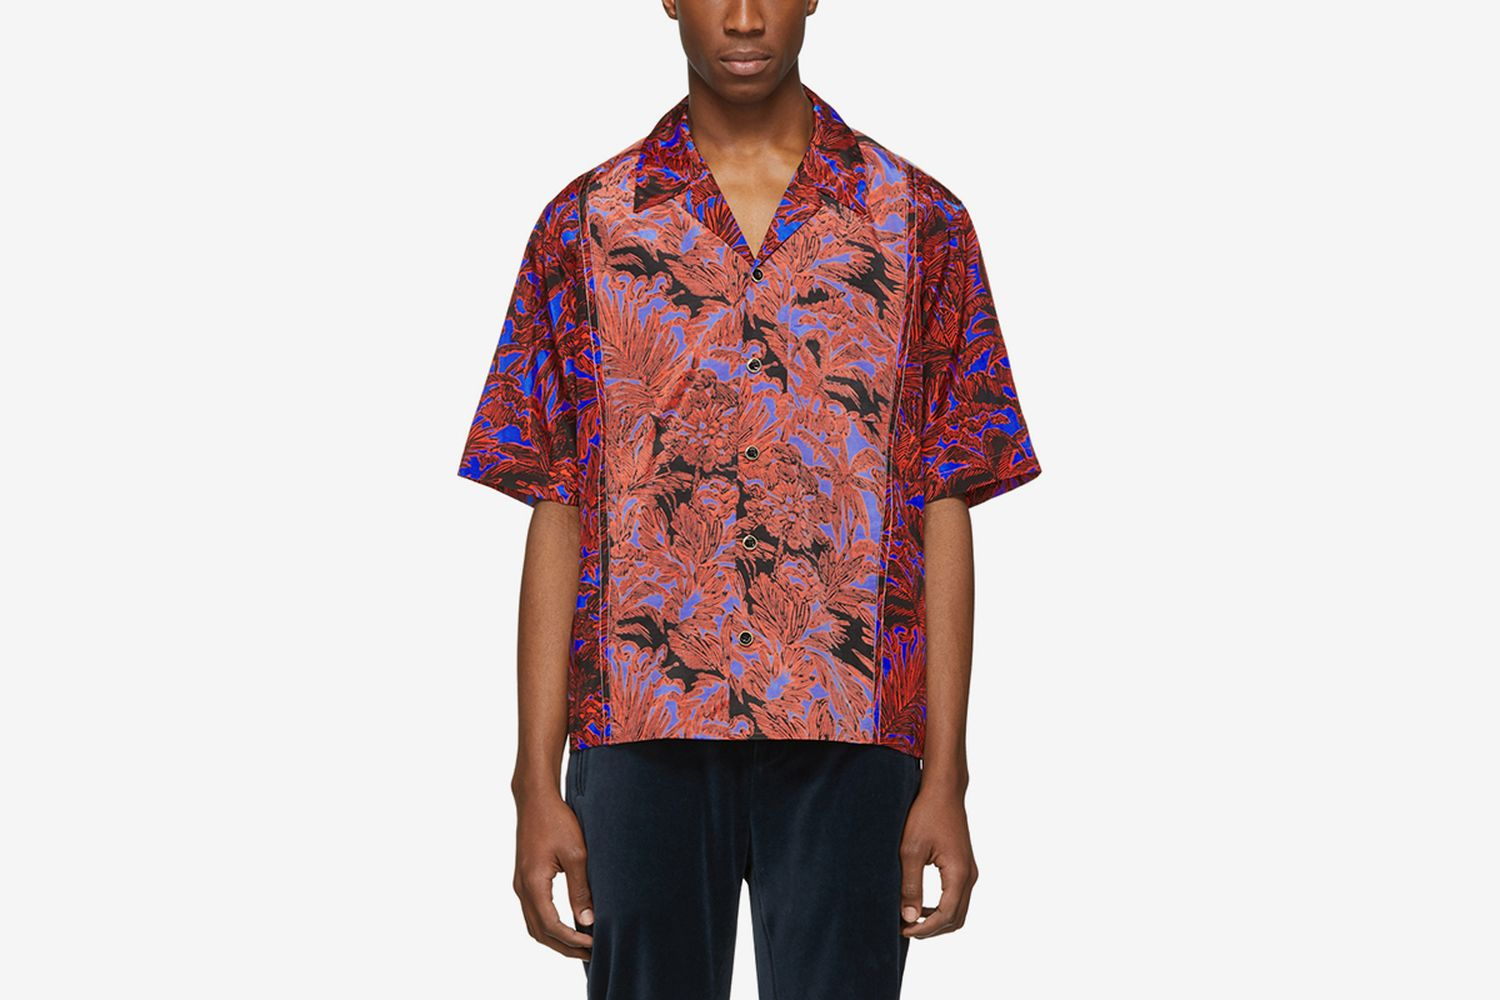 Palm Tree Floral Souvenir Shirt